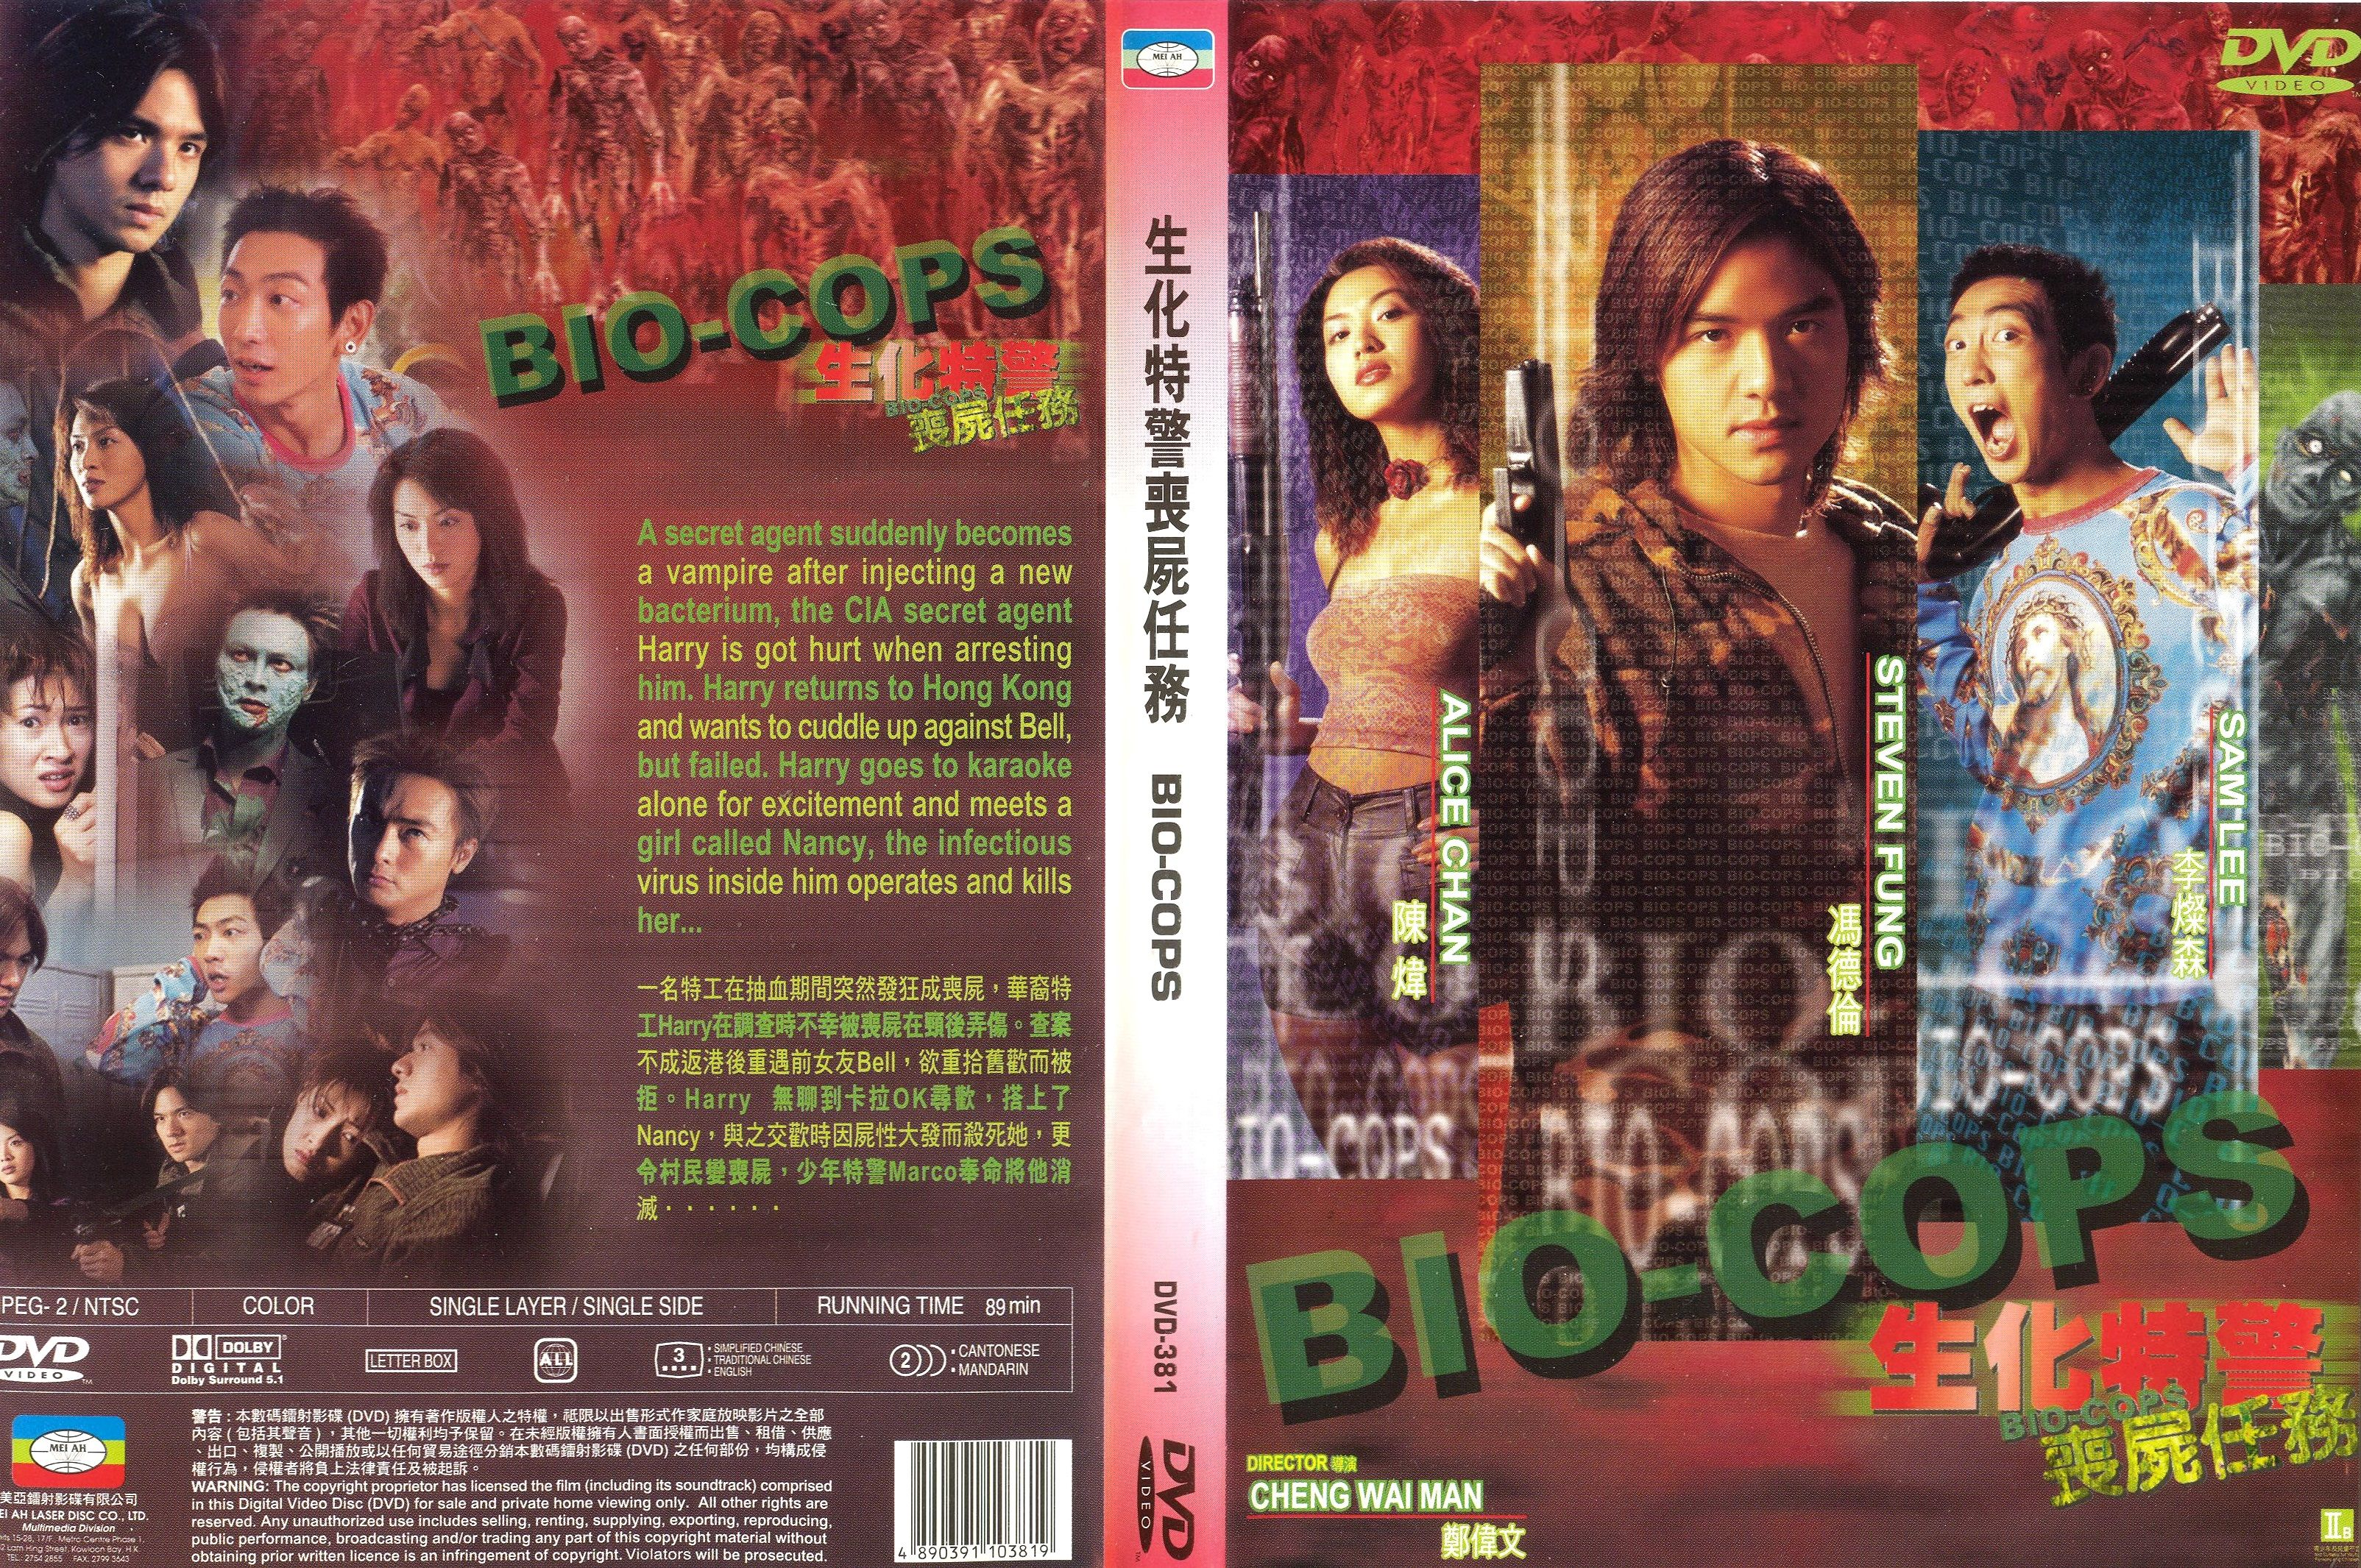 Zombie movies from 2000